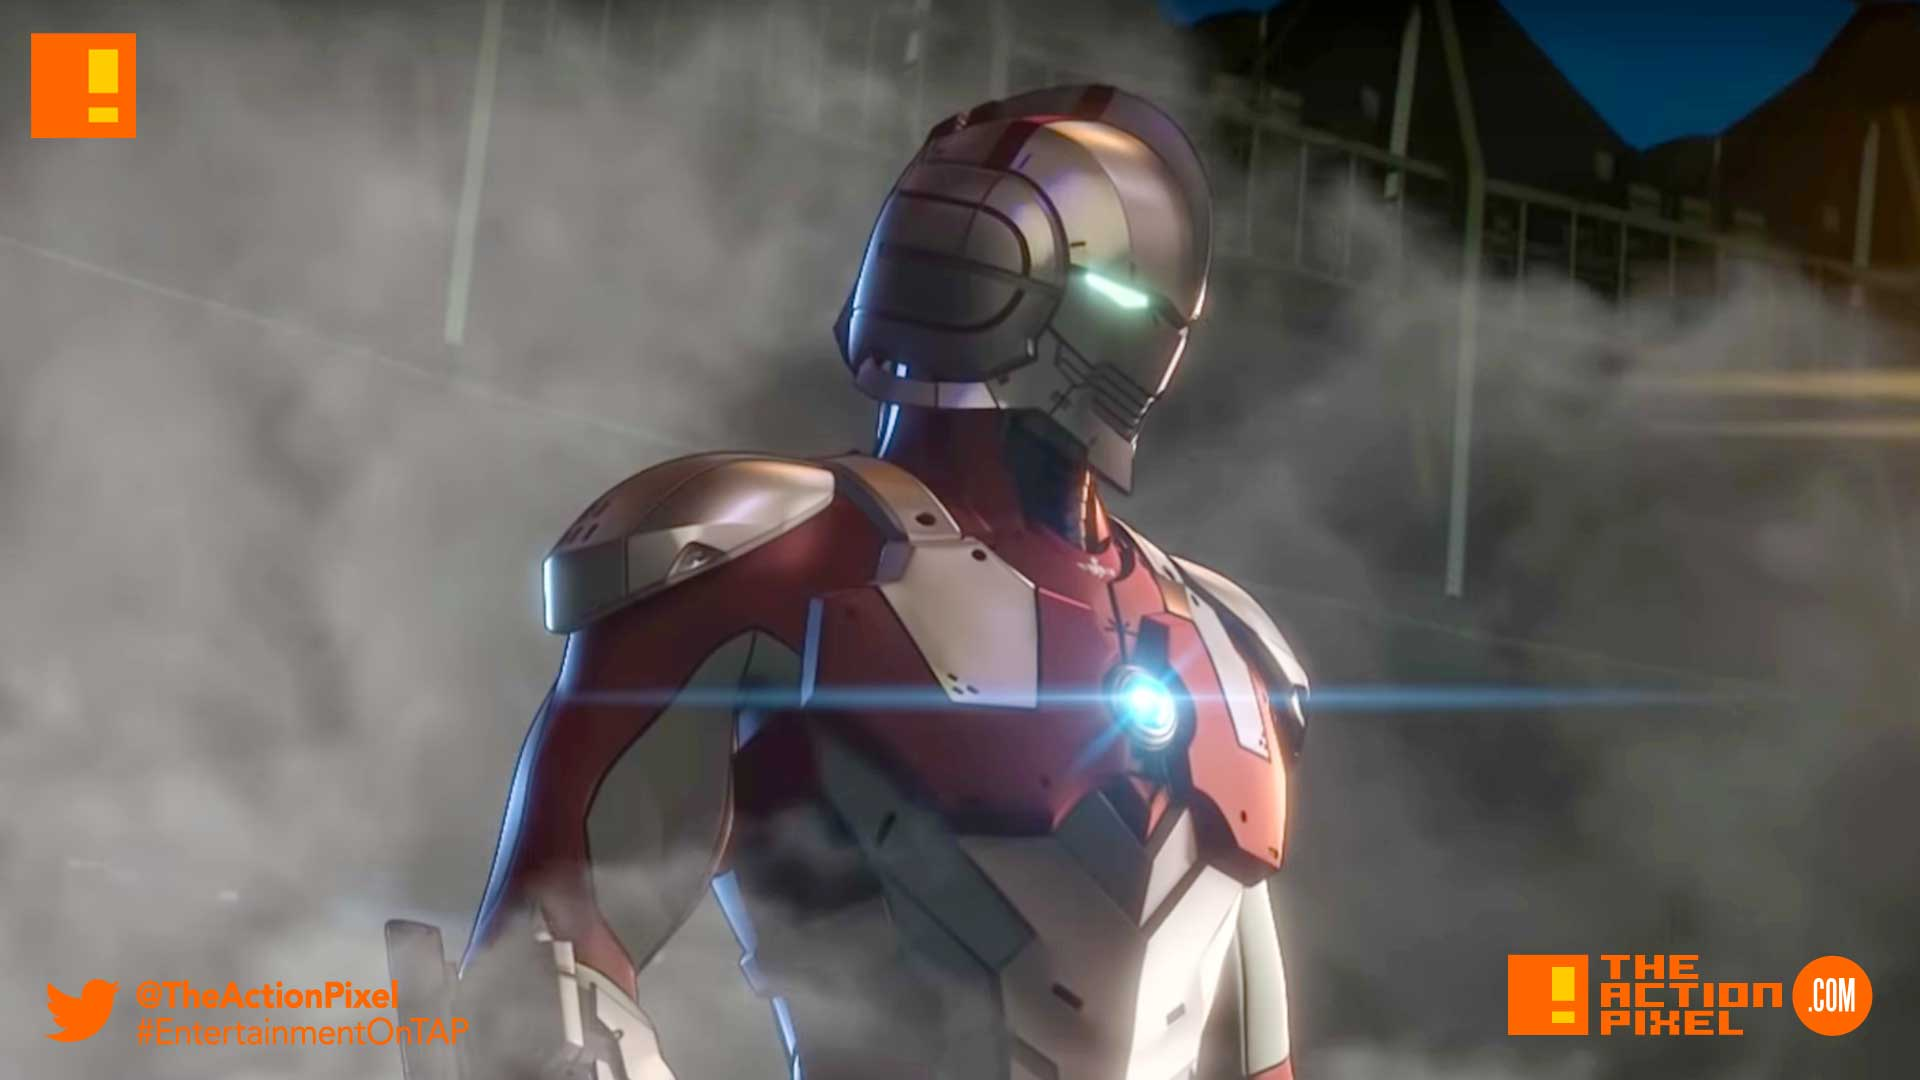 ultraman, Netflix ,Ultraman ,Shinjiro, trailer, the action pixel, entertainment, entertainment new, entertainment blog, breaking news, anime,animation, manga, ultraman manga, ultraman new, ultraman anime 2019, ultraman anime, production ig,production ig ultraman, production ig ultraman anime,